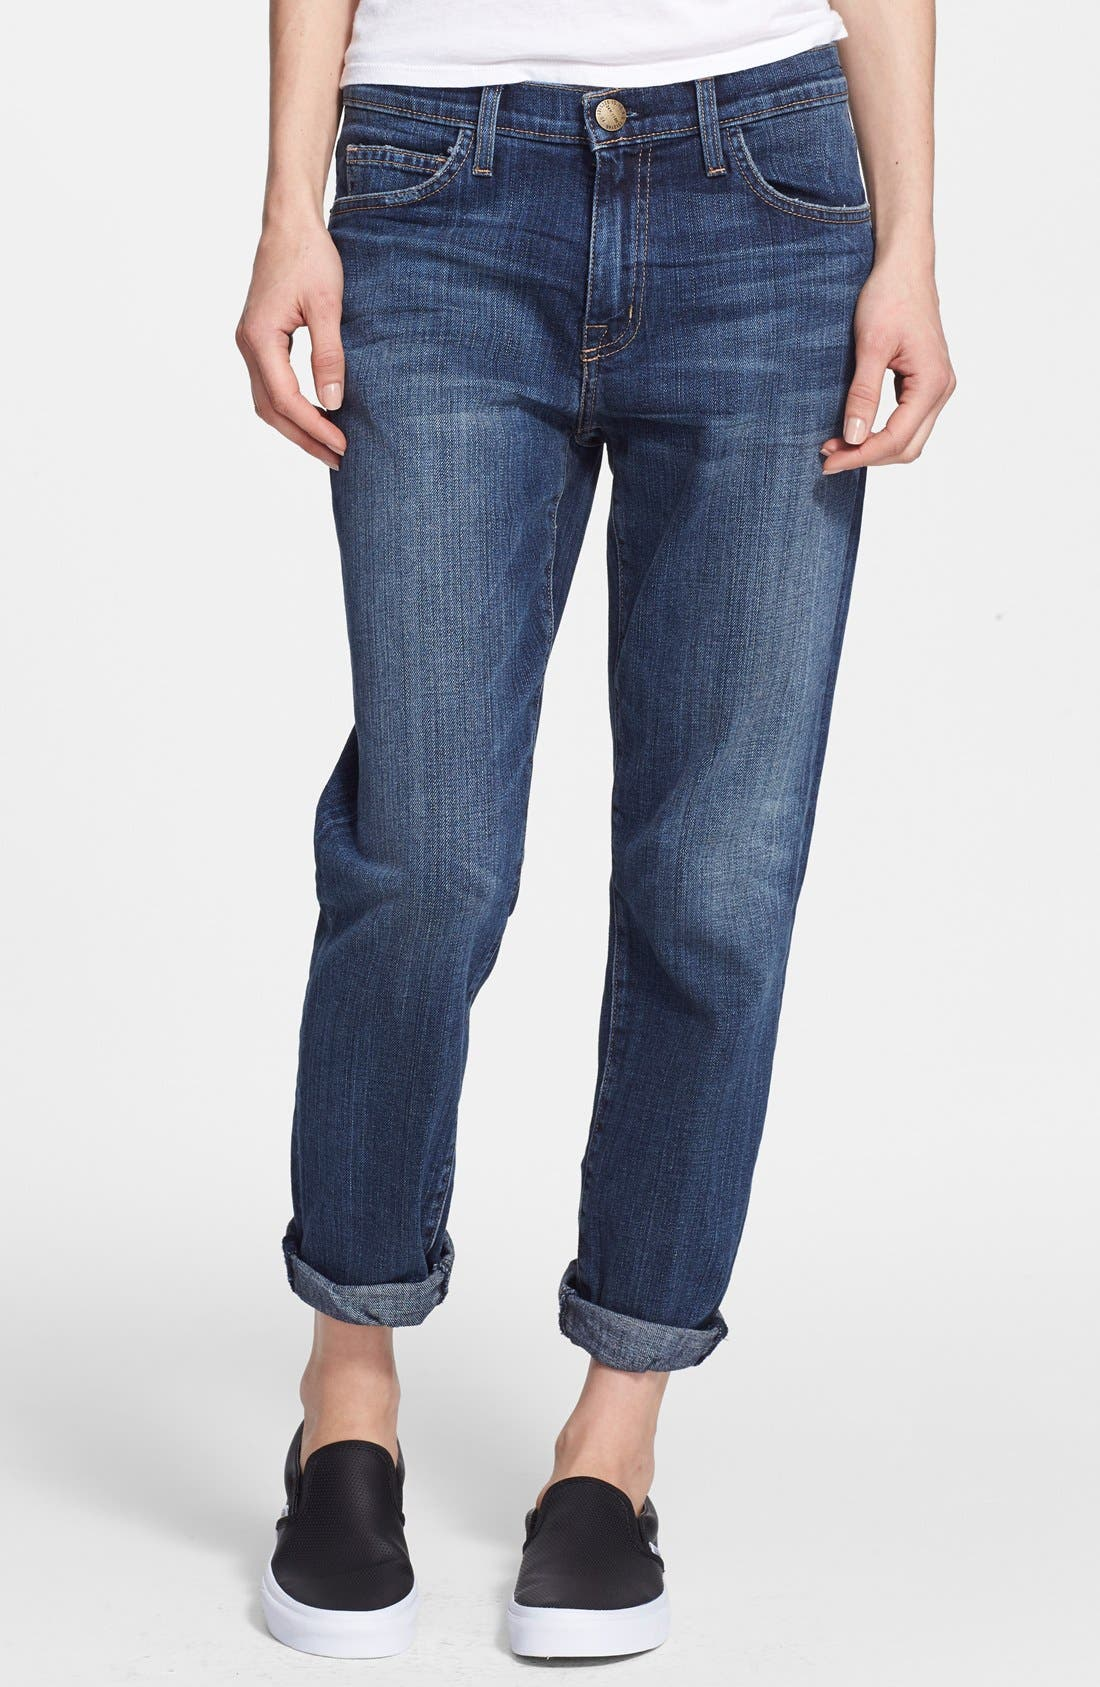 'The Fling' Boyfriend Jeans,                         Main,                         color, Loved